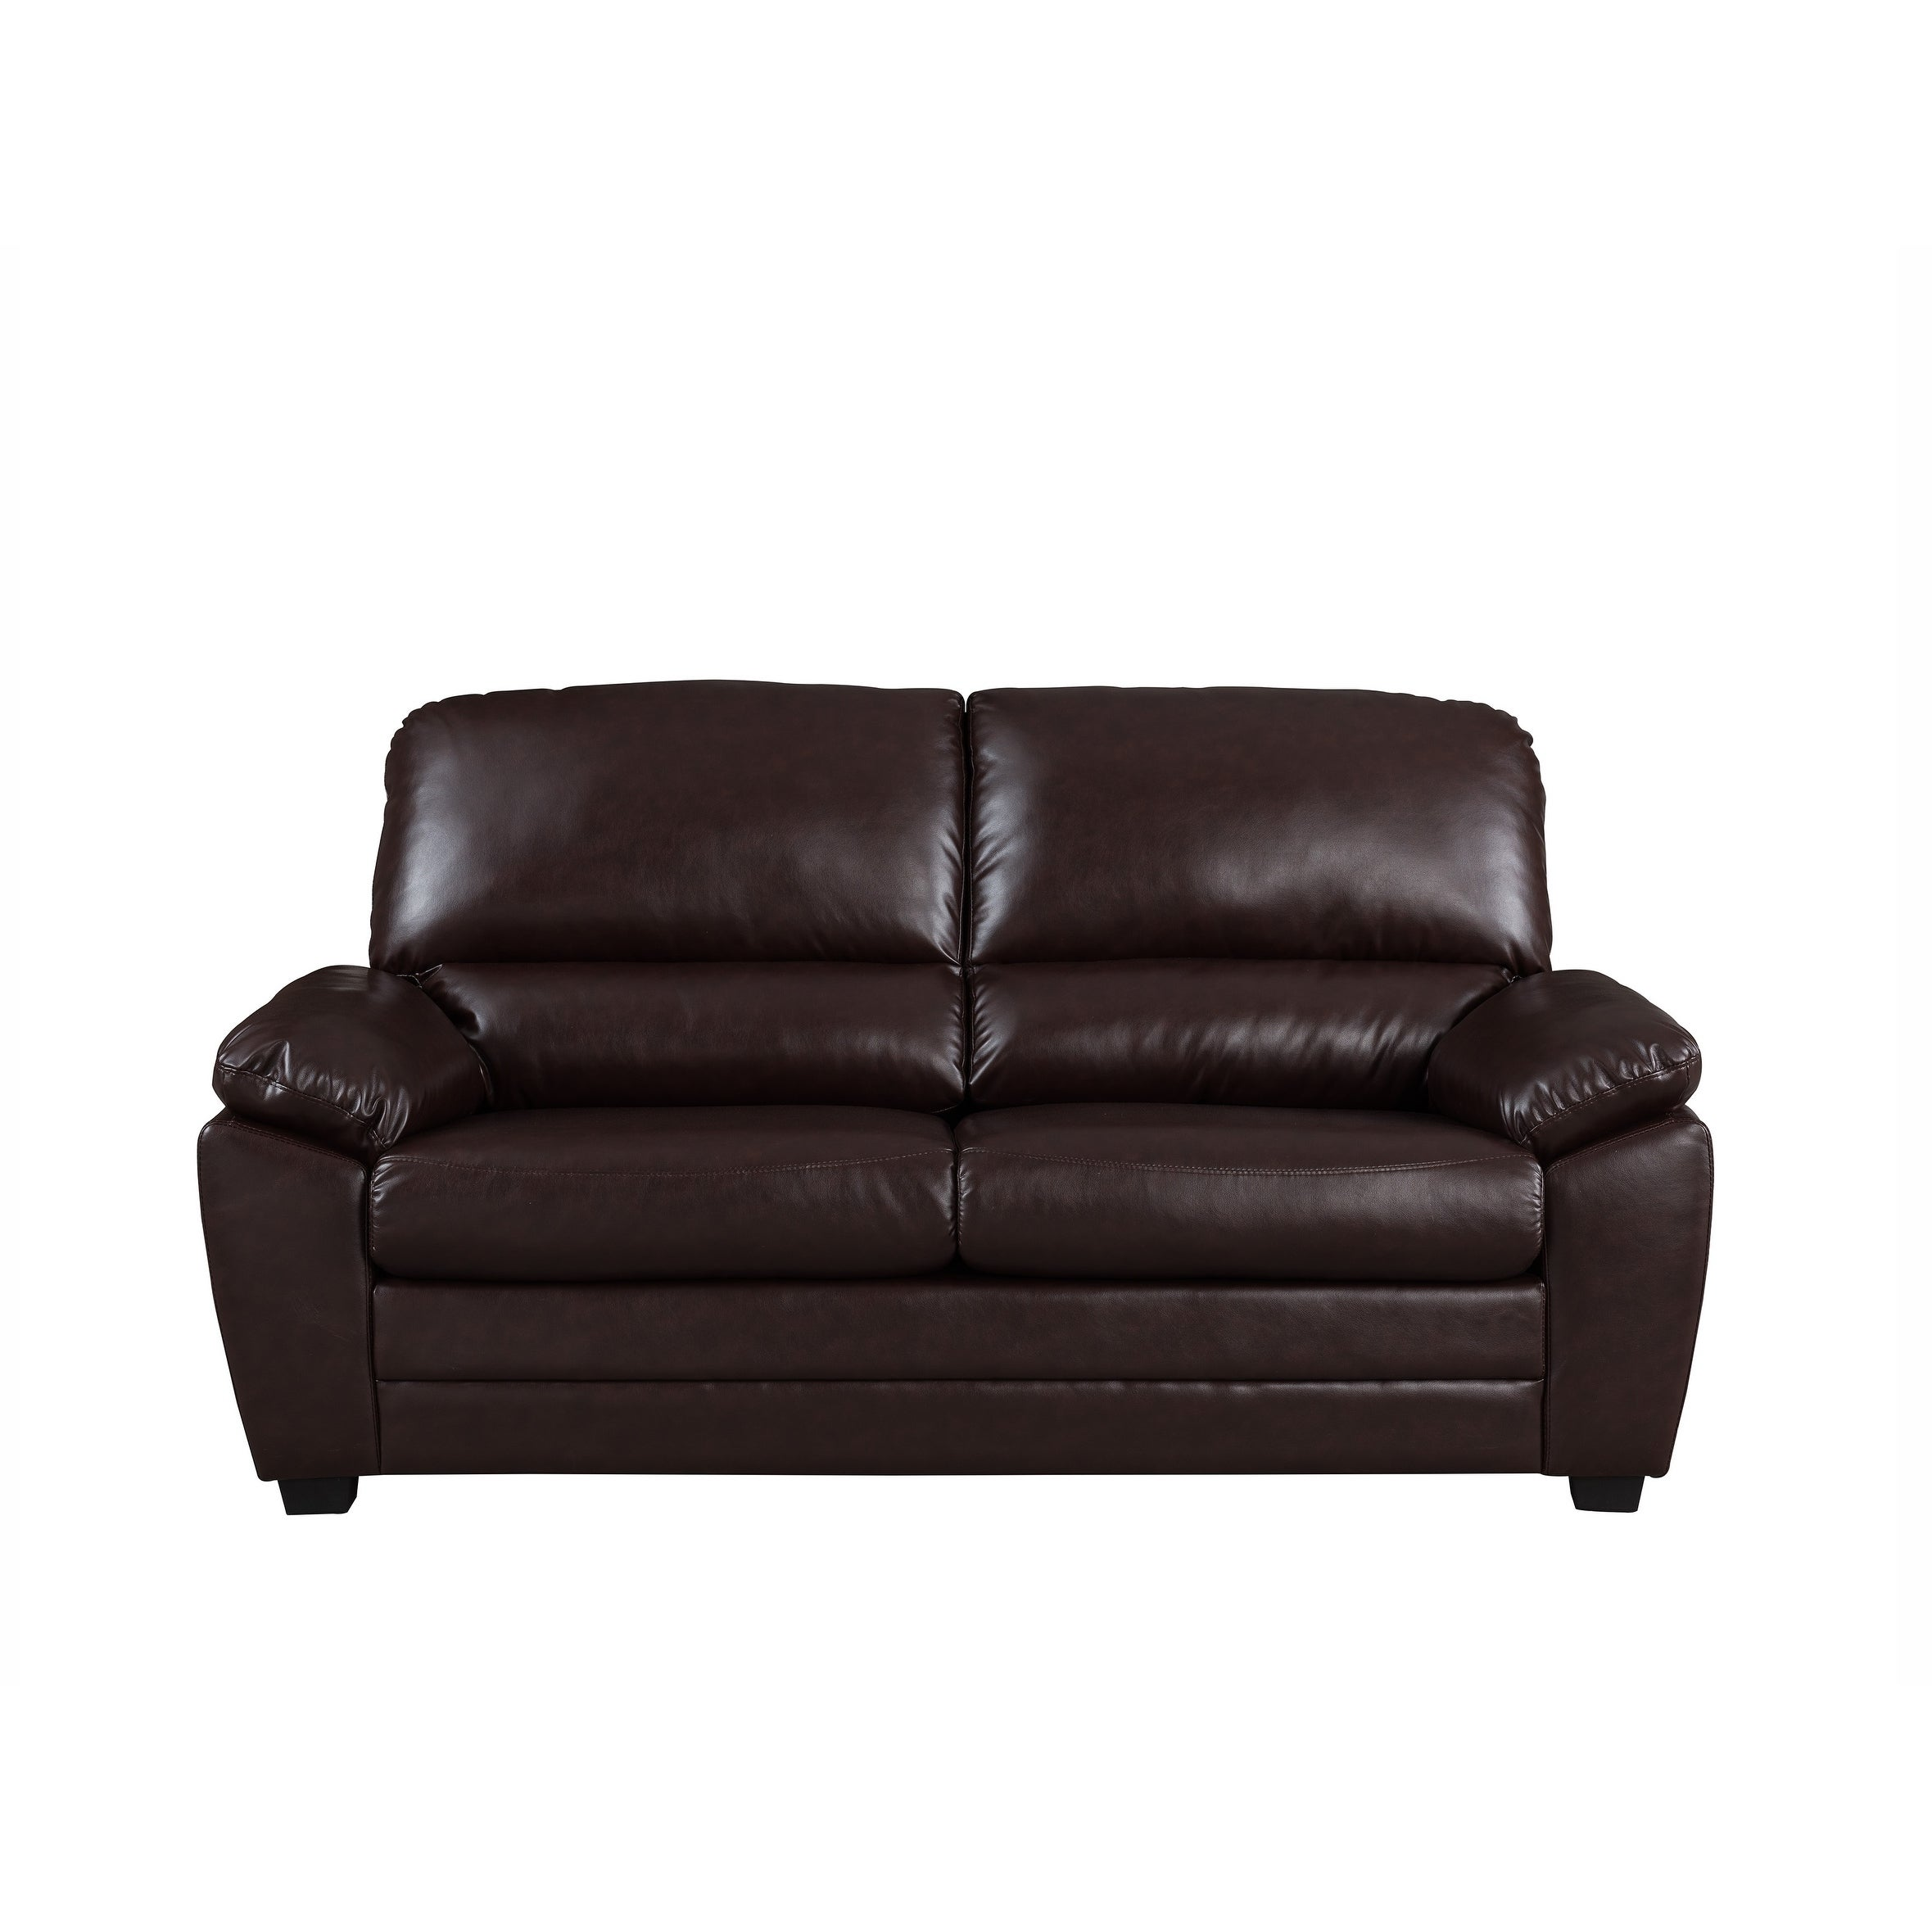 Cary 71 Dark Brown Faux Leather Sofa On Free Shipping Today 21030296